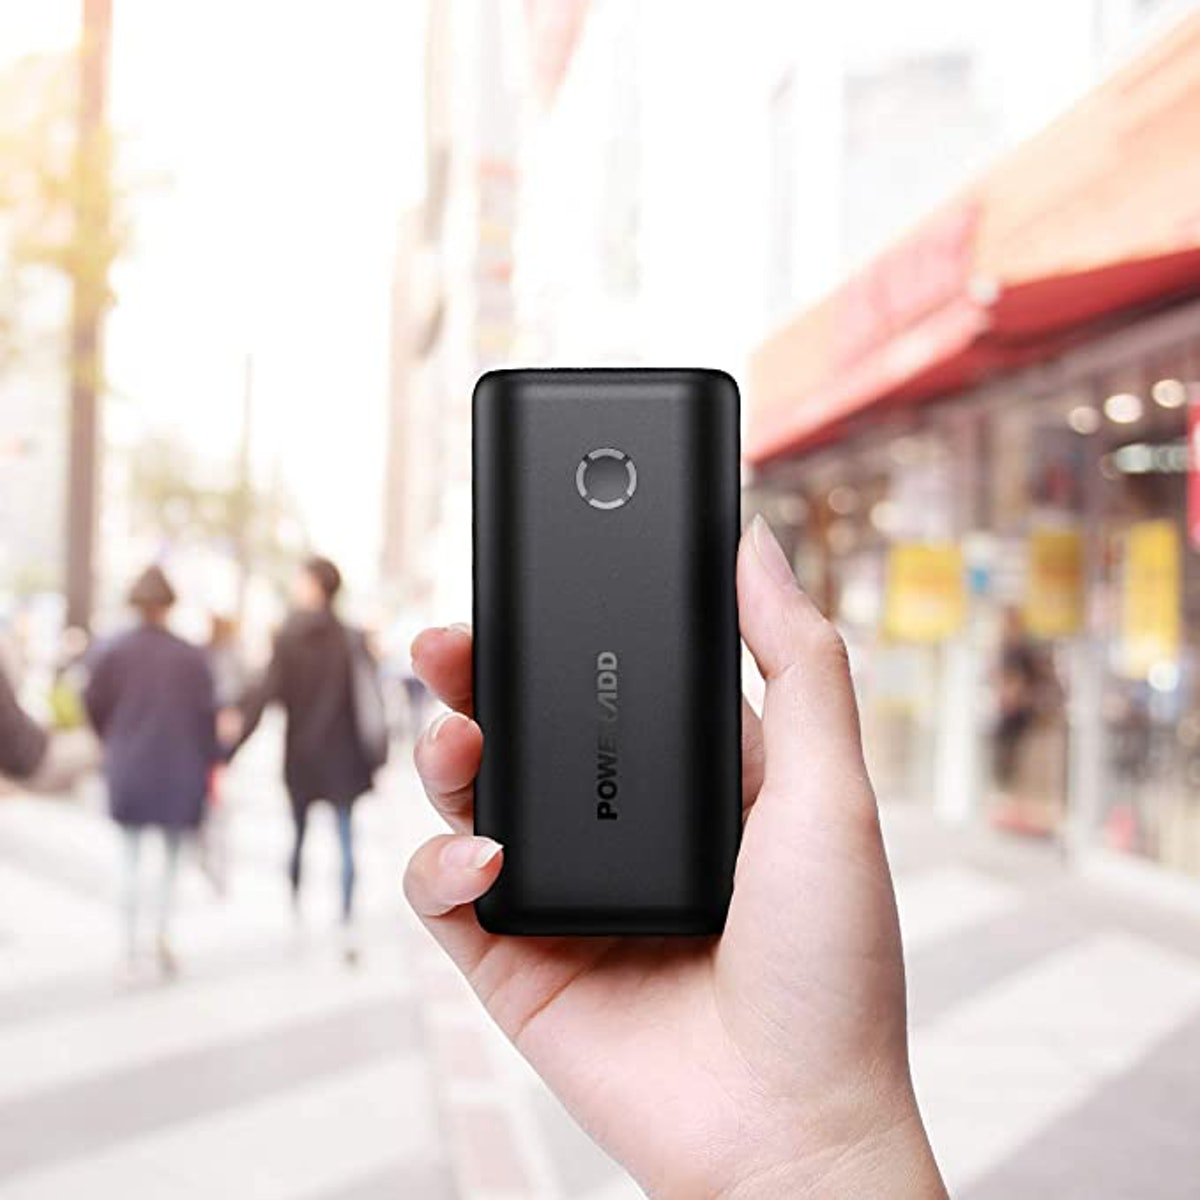 POWERADD EnergyCell Portable Charger